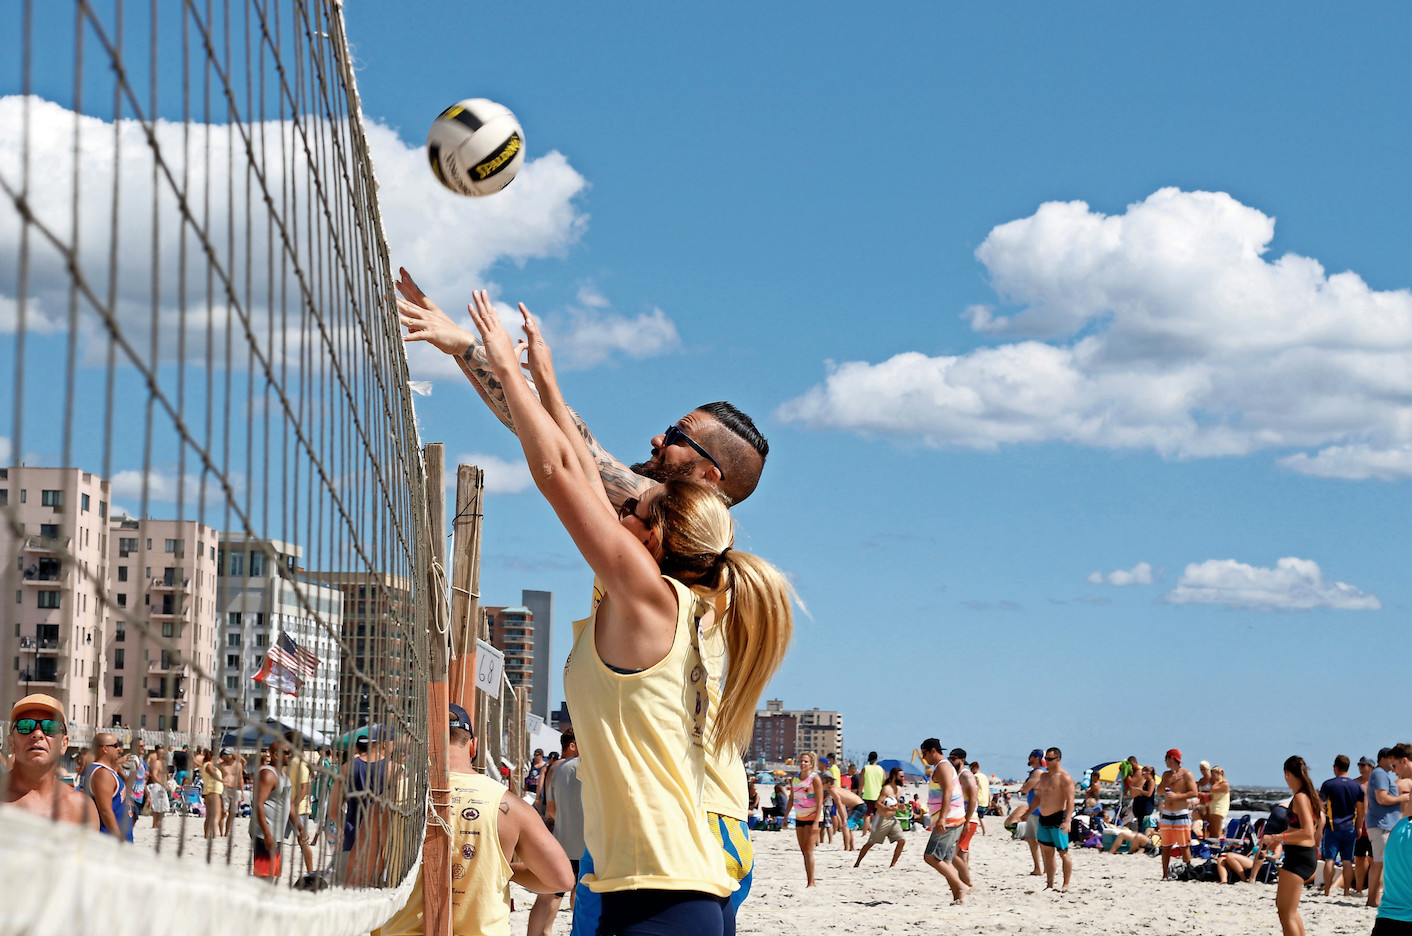 Organizers of special events, including the Michelle O'Neill Volleyball Tournament, said that the discussion of increasing permit fees, as well as a proposal to reimburse the city, have cast a pall over preparations for this year's events.